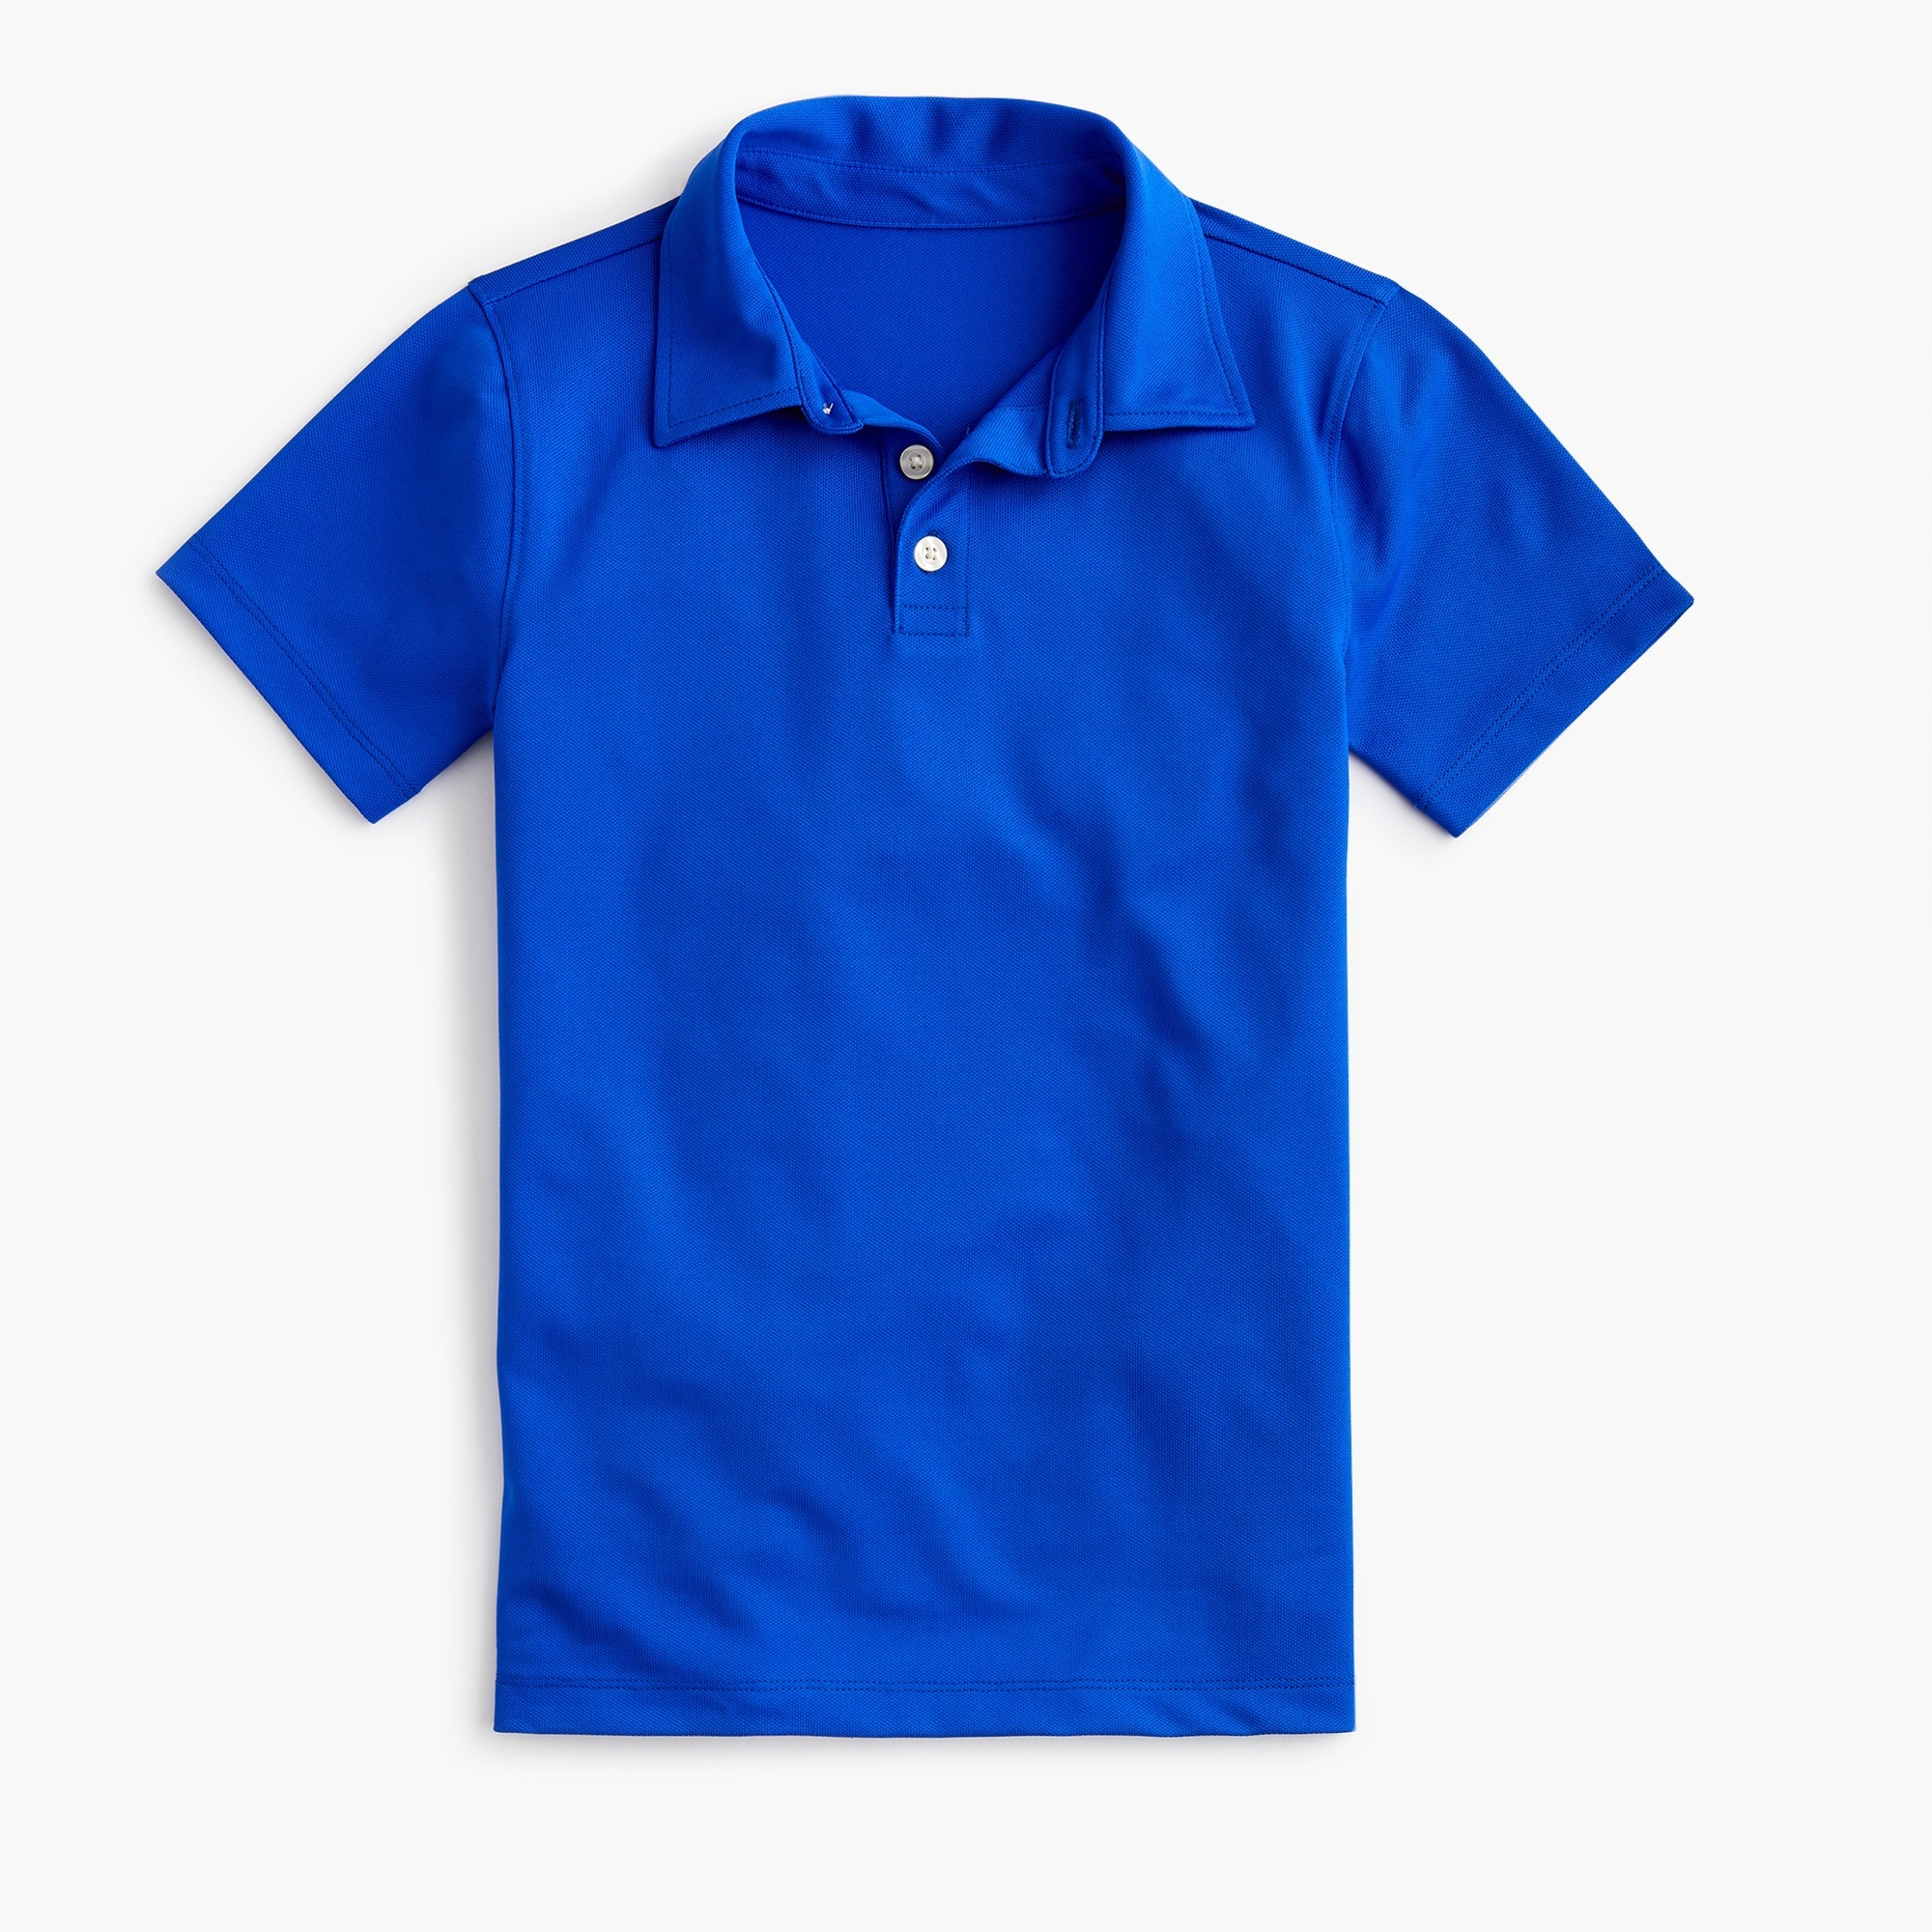 Boys' short-sleeve sport polo shirt boy new arrivals c